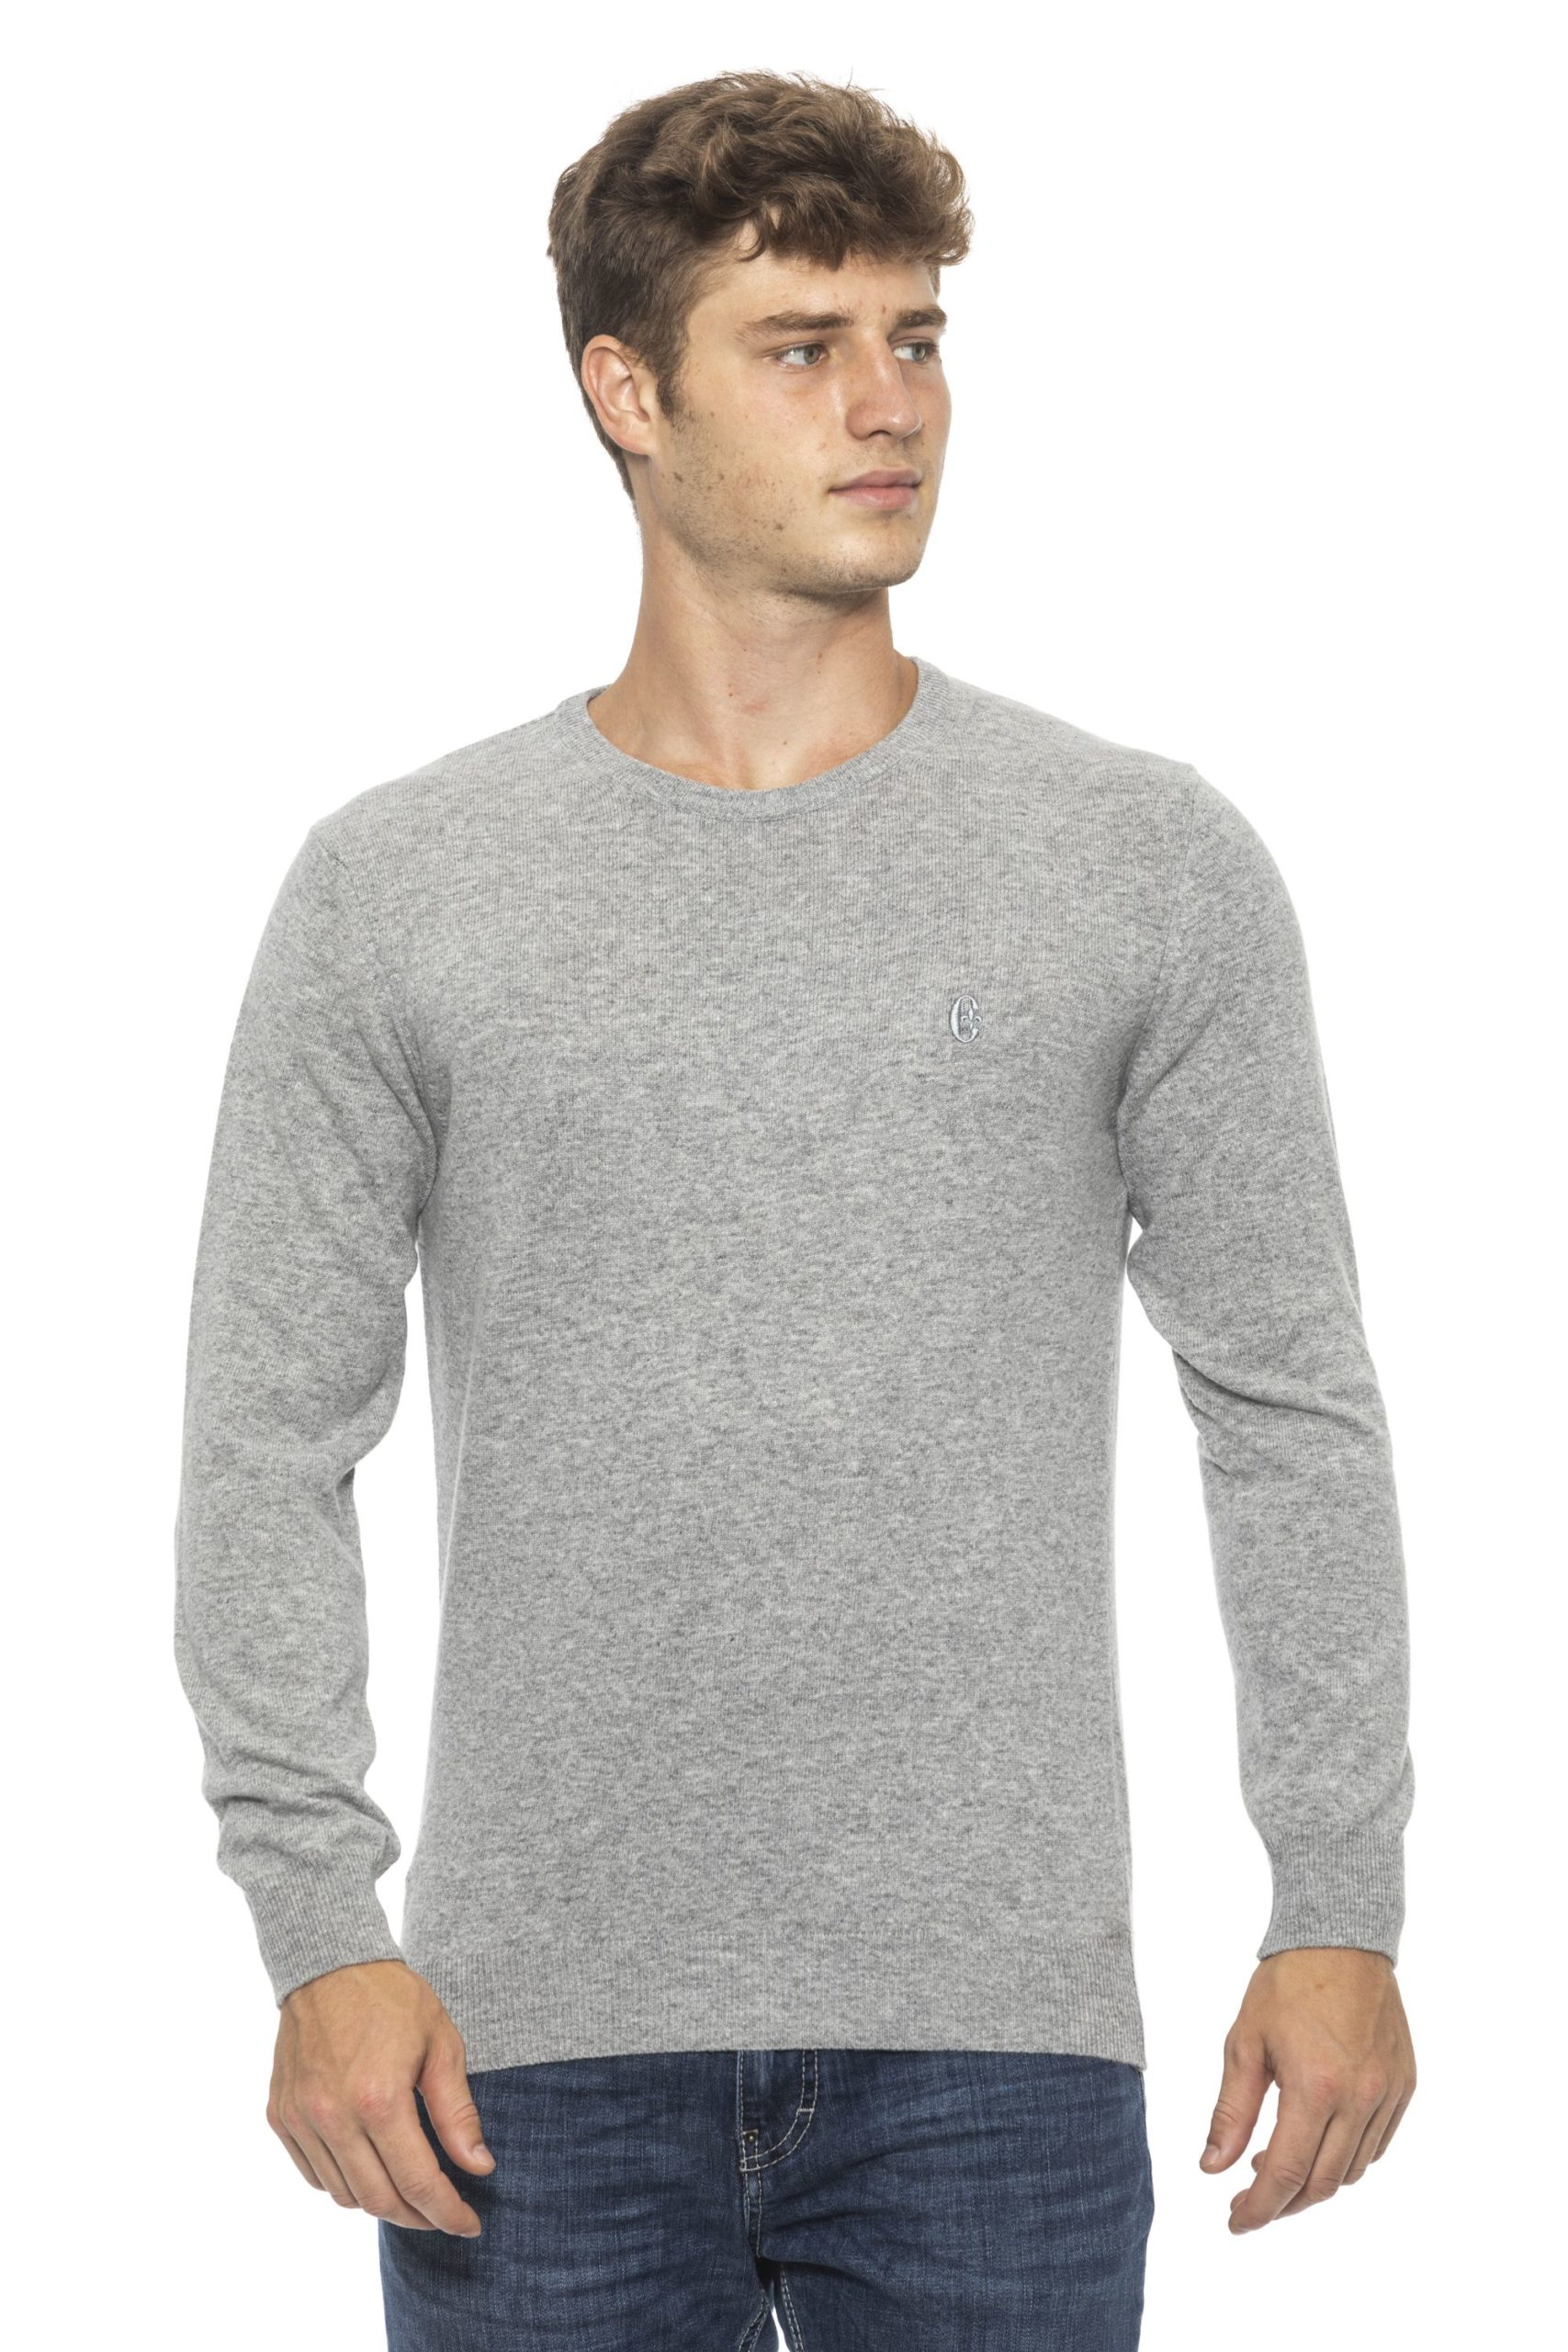 Conte of Florence Men's Sweater Silver CO1272733 - M